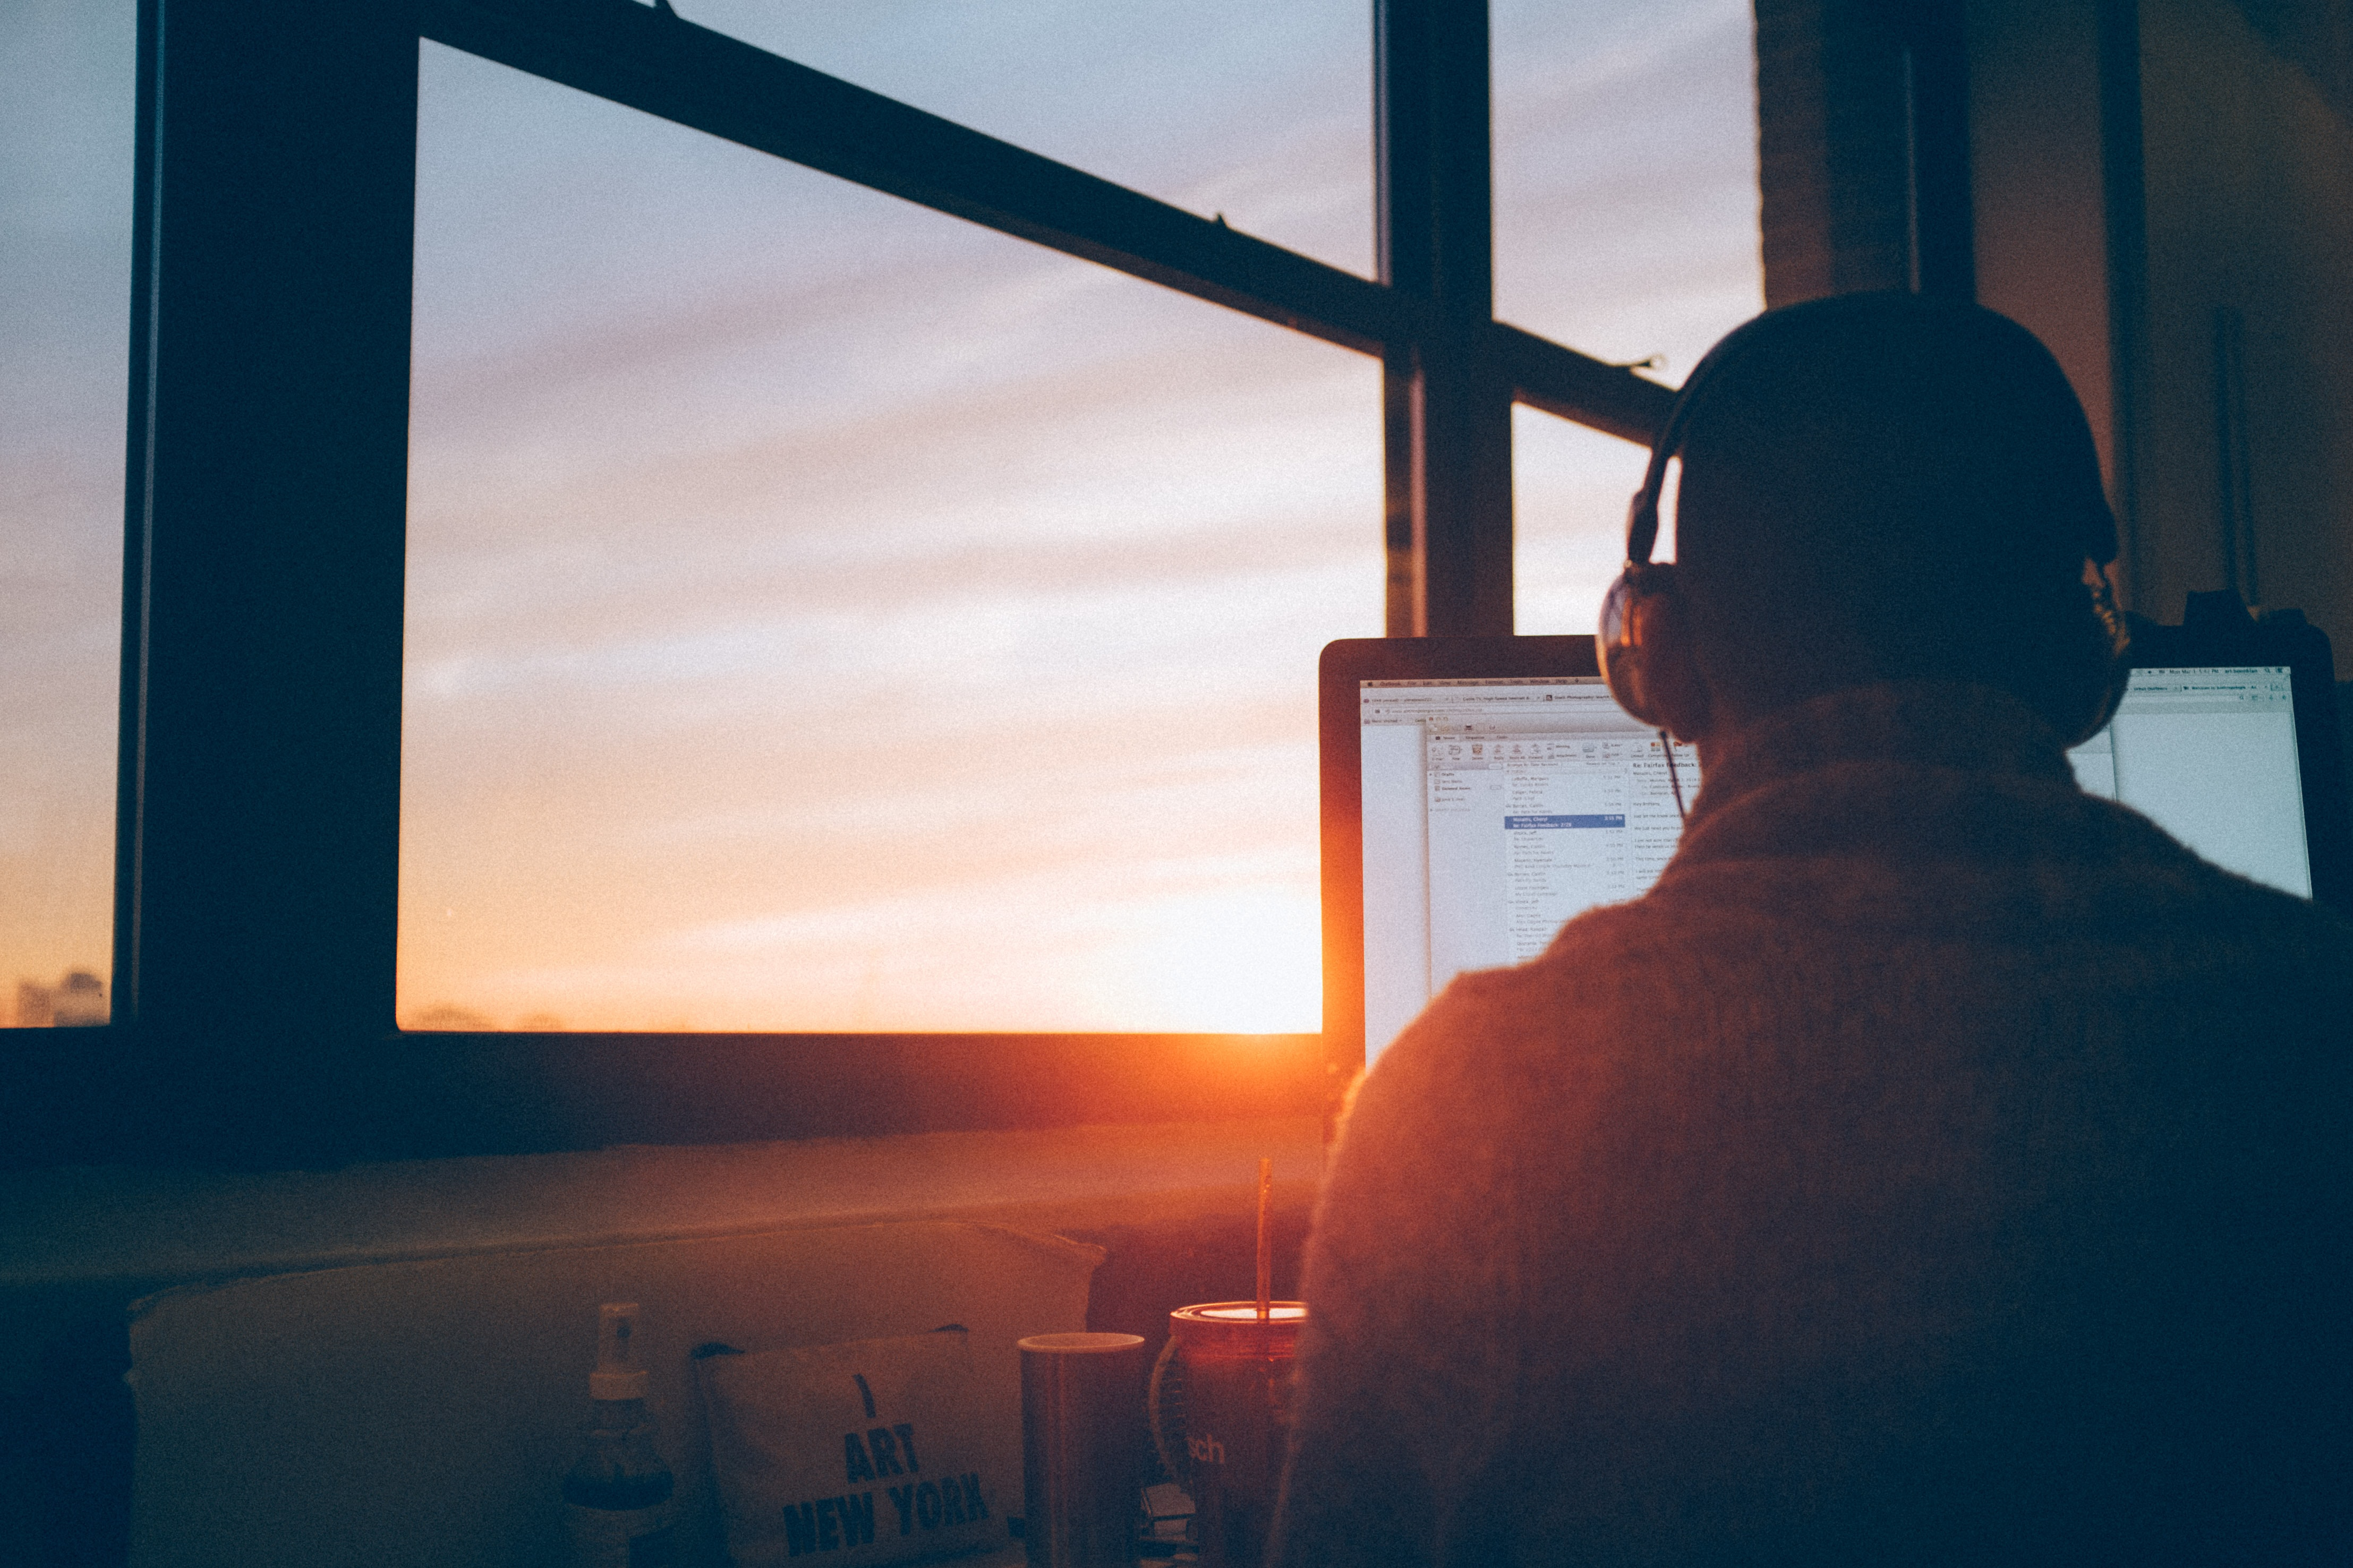 10 Inspiring Podcasts For the Entrepreneur in All of Us